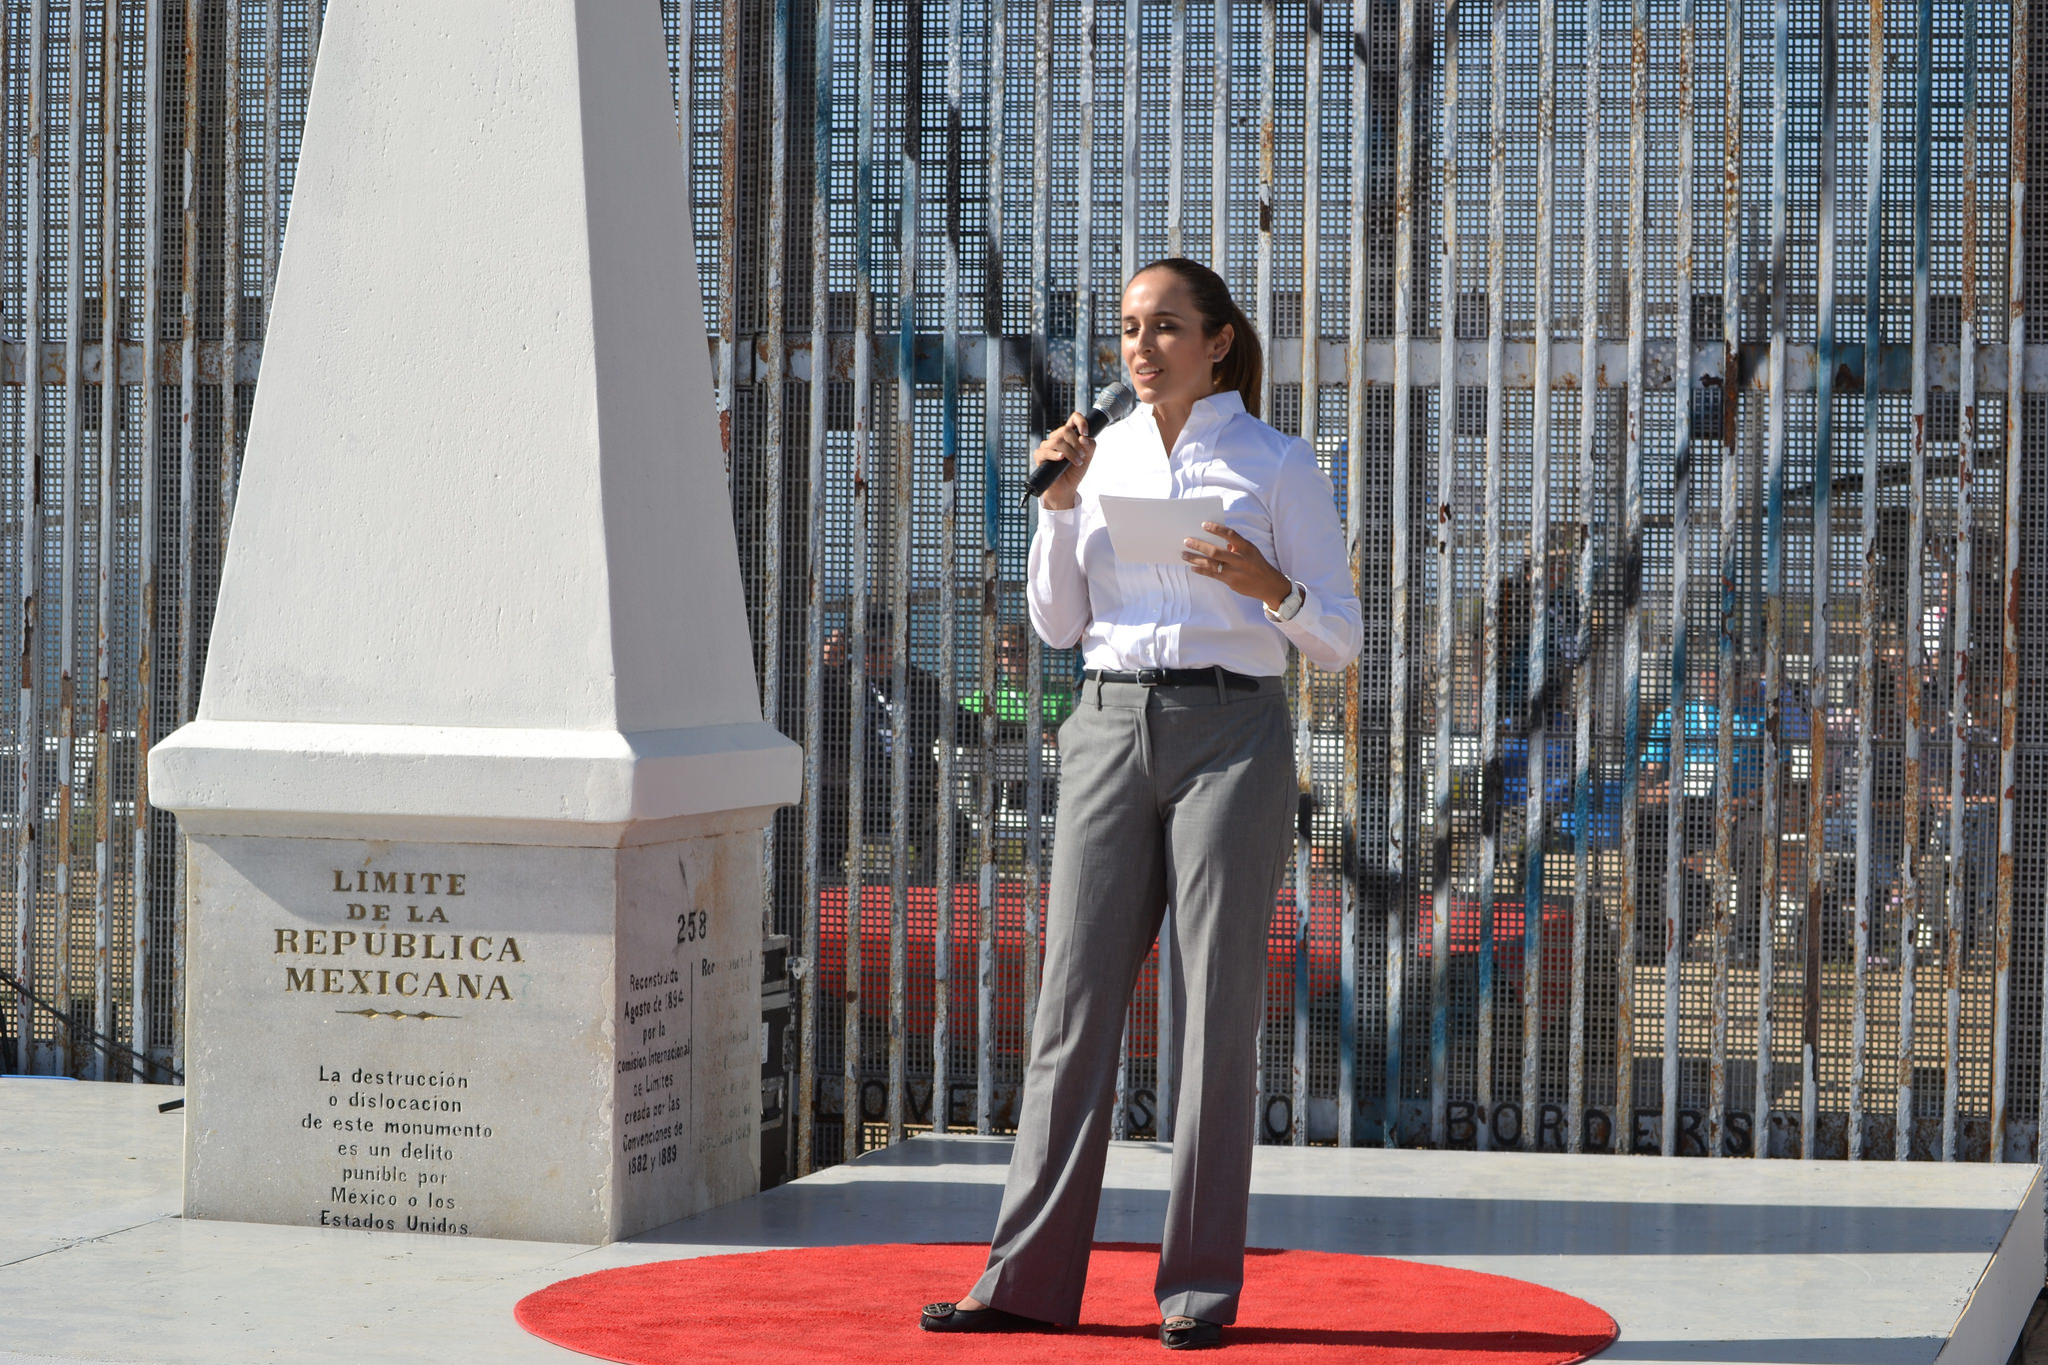 Adriana Eguia Alaniz She stands next to Monument 258, the first point of demarcation between the US and Mexico. The stage on the Mexican side of the fence was built to incorporate it. Eguia Alaniz began her talk in the morning in the US and ended it in the afternoon in Mexico. Photo: Arturo Loaiza/TEDxMonumento258